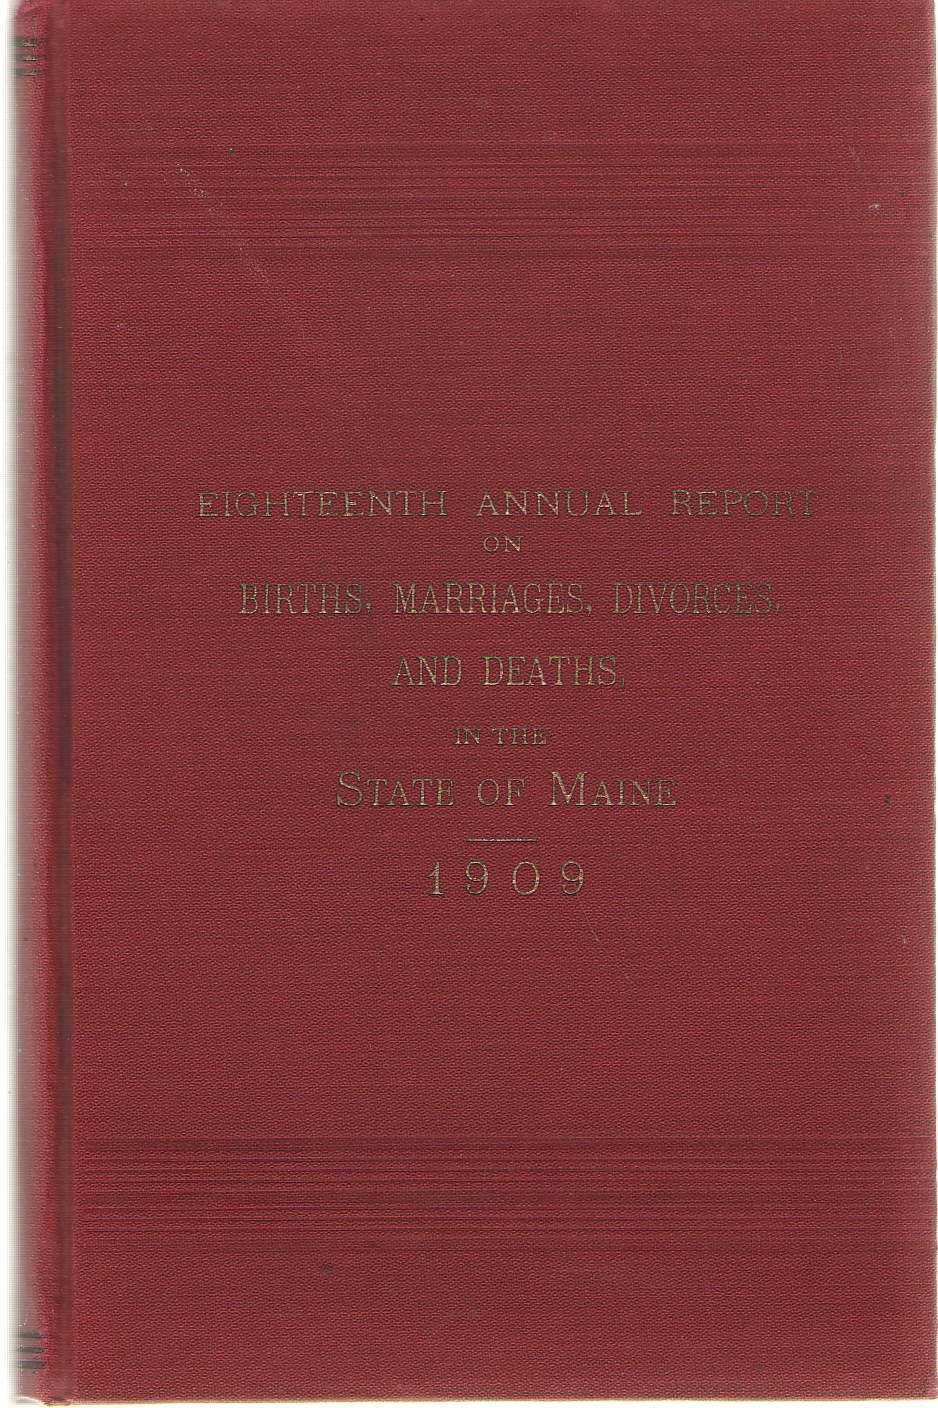 Image for Eighteenth Annual Report On Births, Marriages, Divorces, And Deaths, In The State Of Maine For The Year Ending December 31, 1909